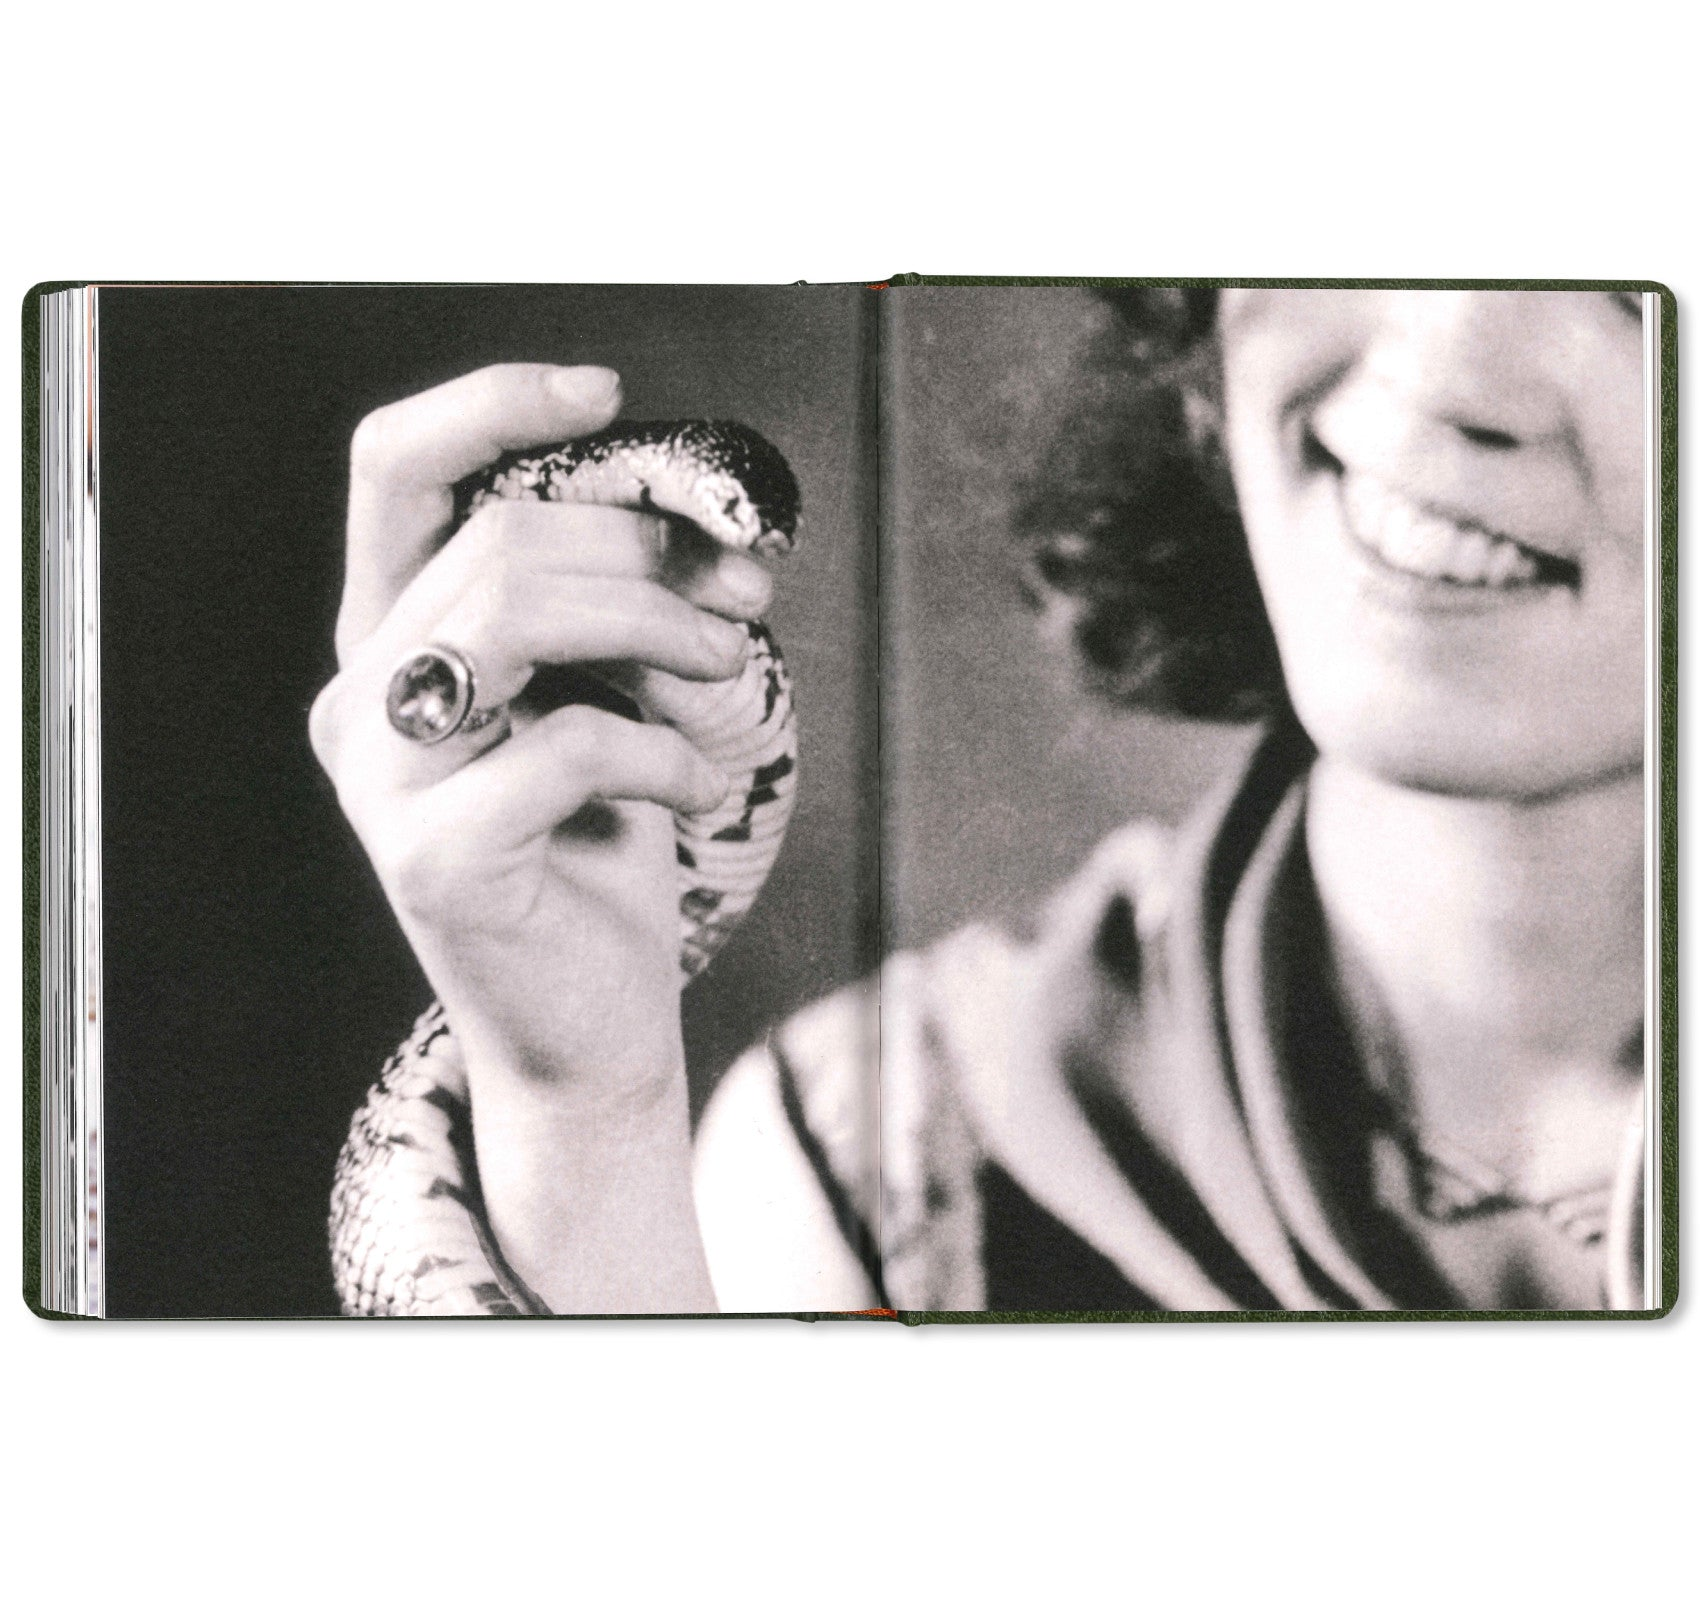 GIRL PLAYS WITH SNAKE by Clare Strand